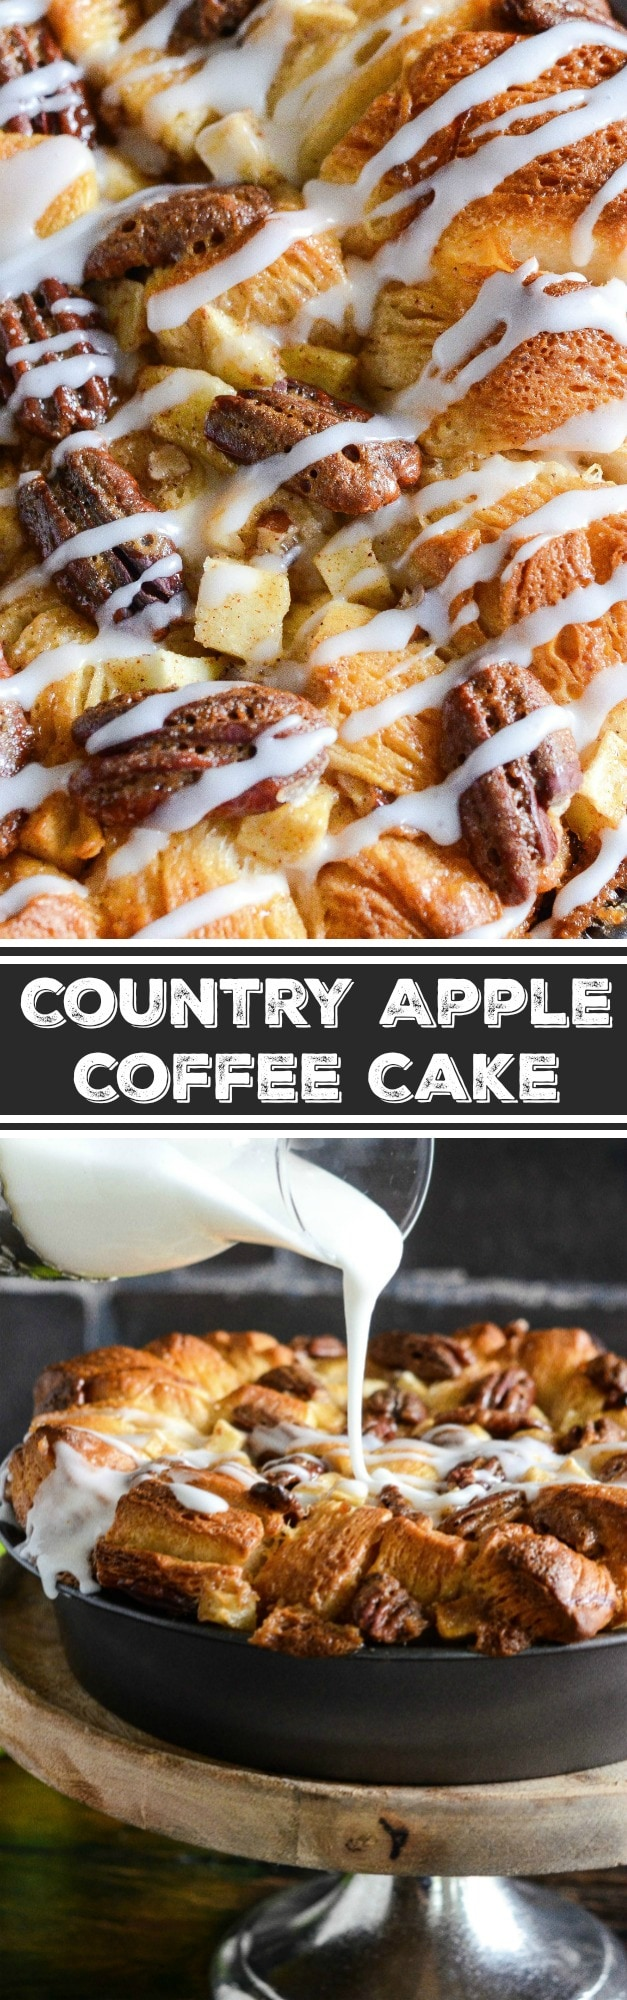 Country Apple Coffee Cake: apples, cinnamon, brown sugar, flaky biscuits and a little whiskey combine to make a gorgeous twist on your favorite coffee cake!